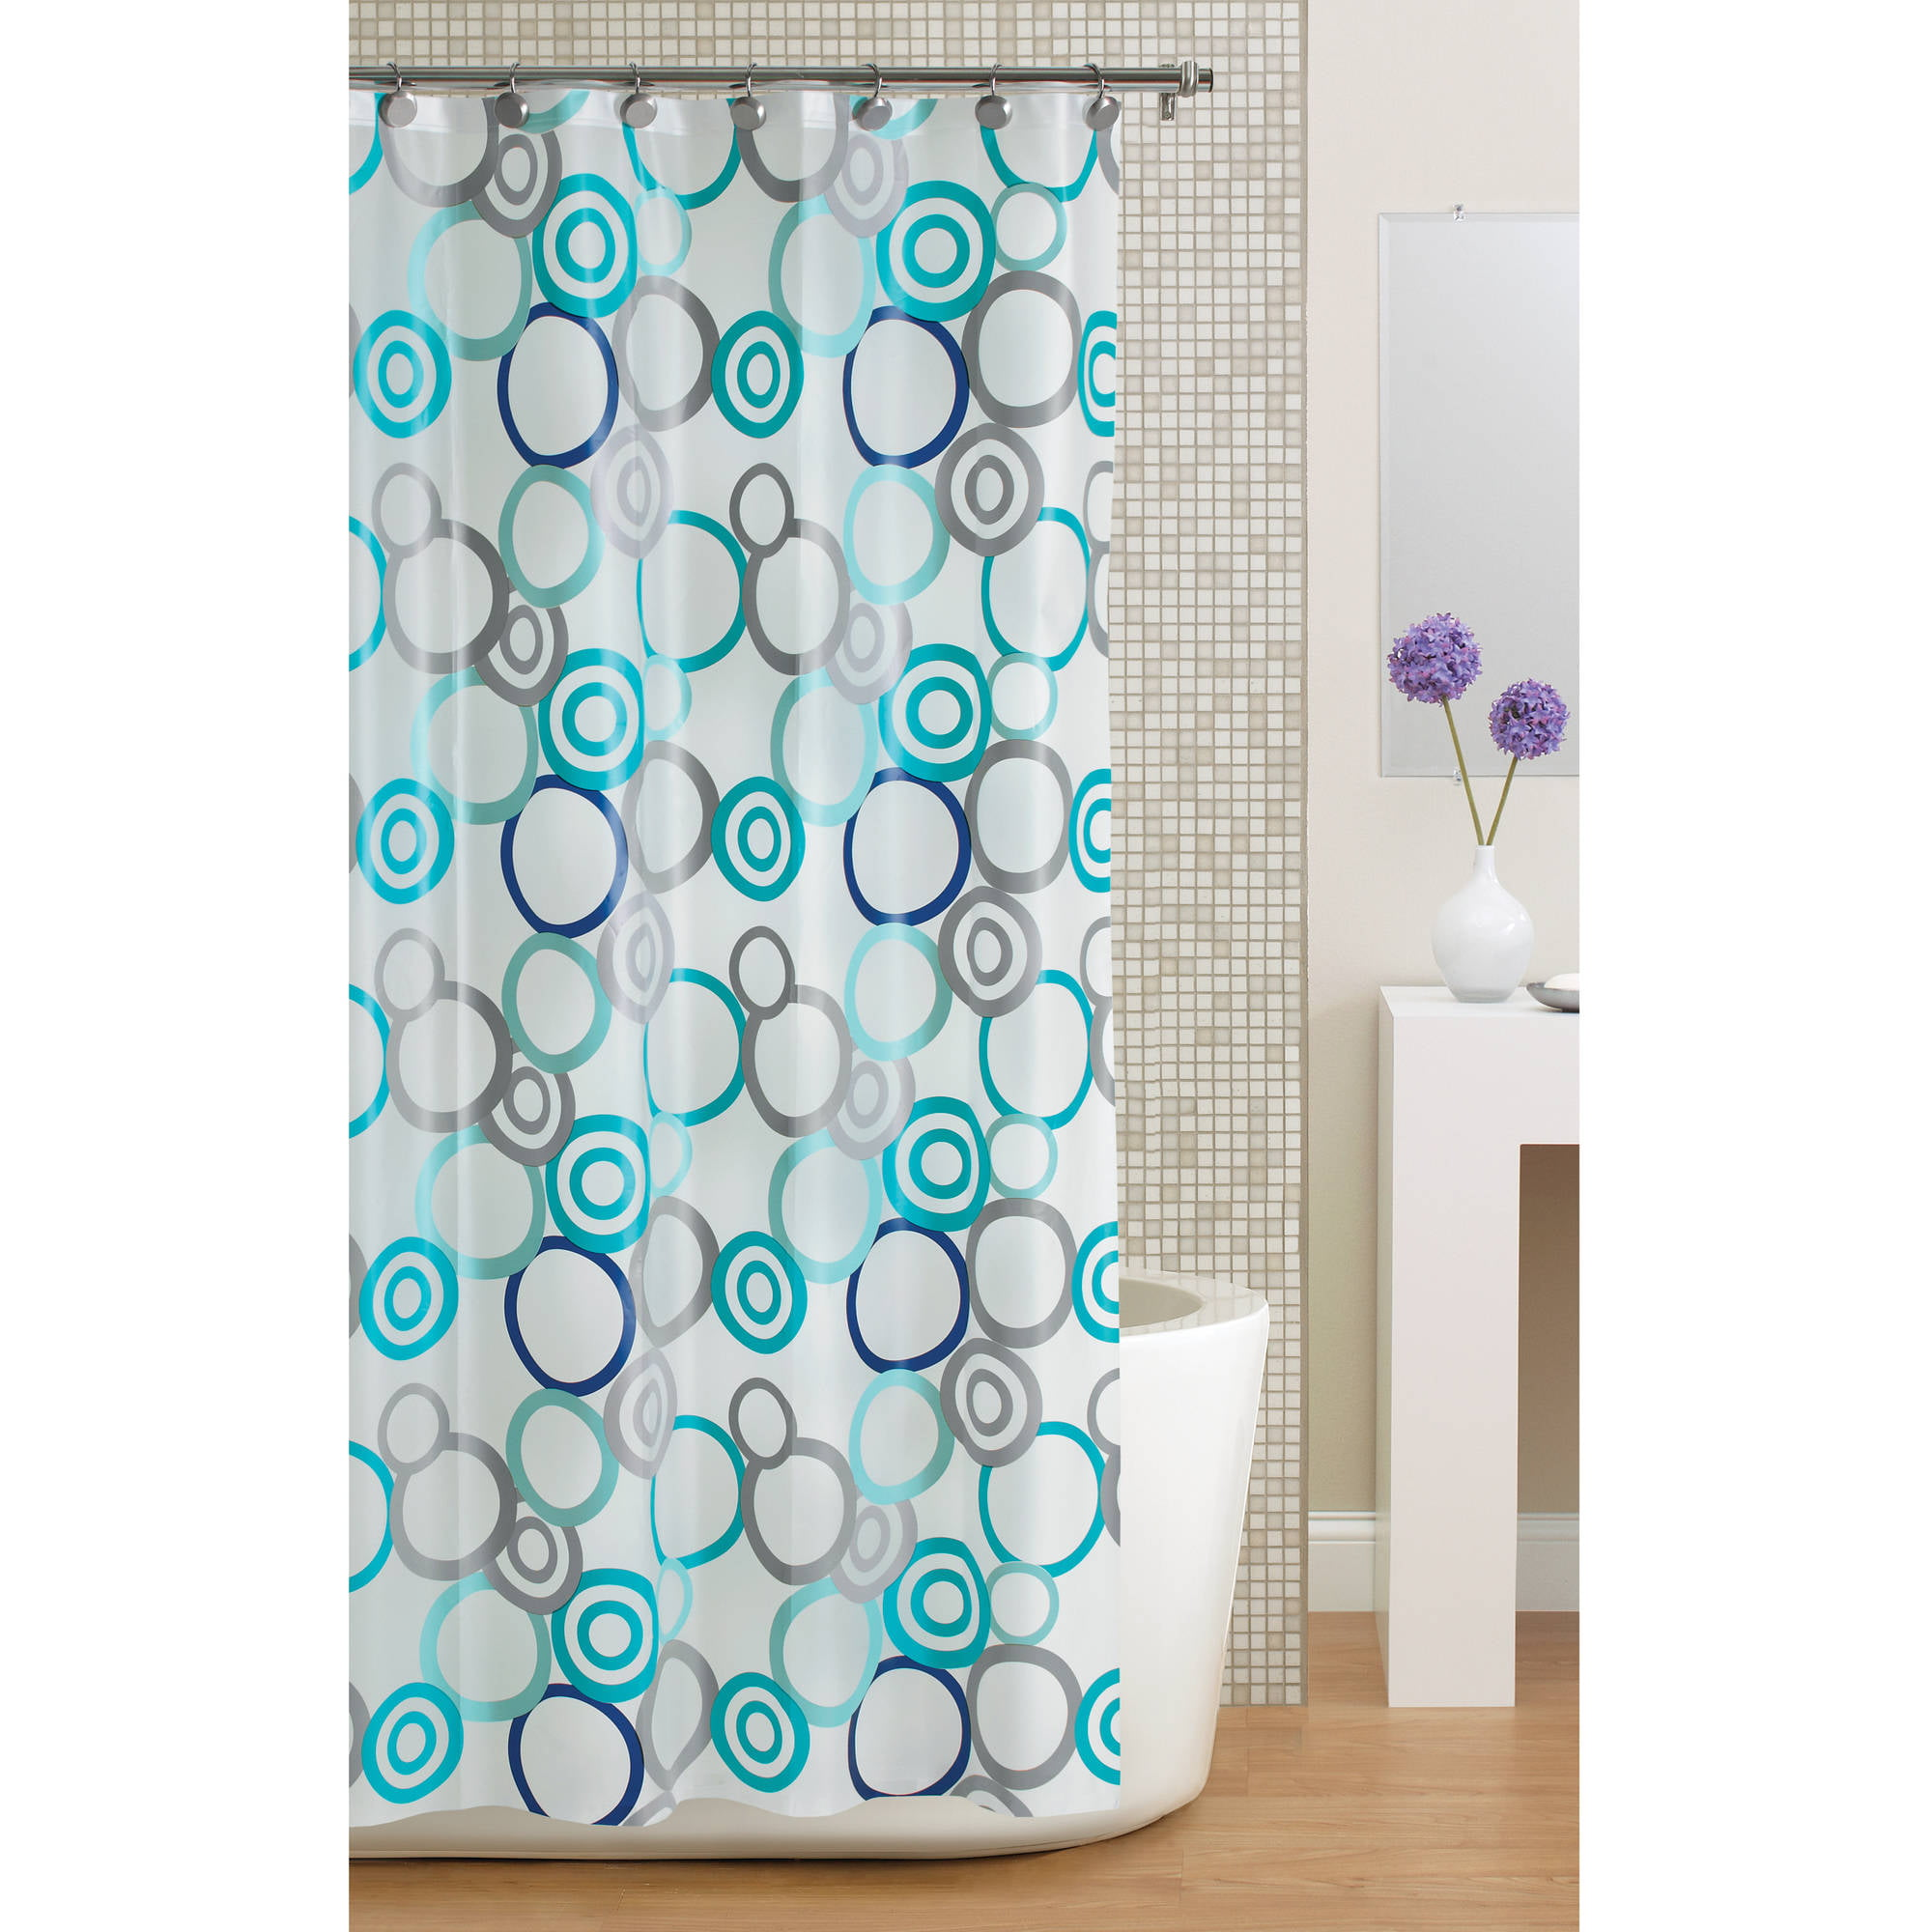 Bathroom curtains from walmart - Bathroom Curtains From Walmart 5